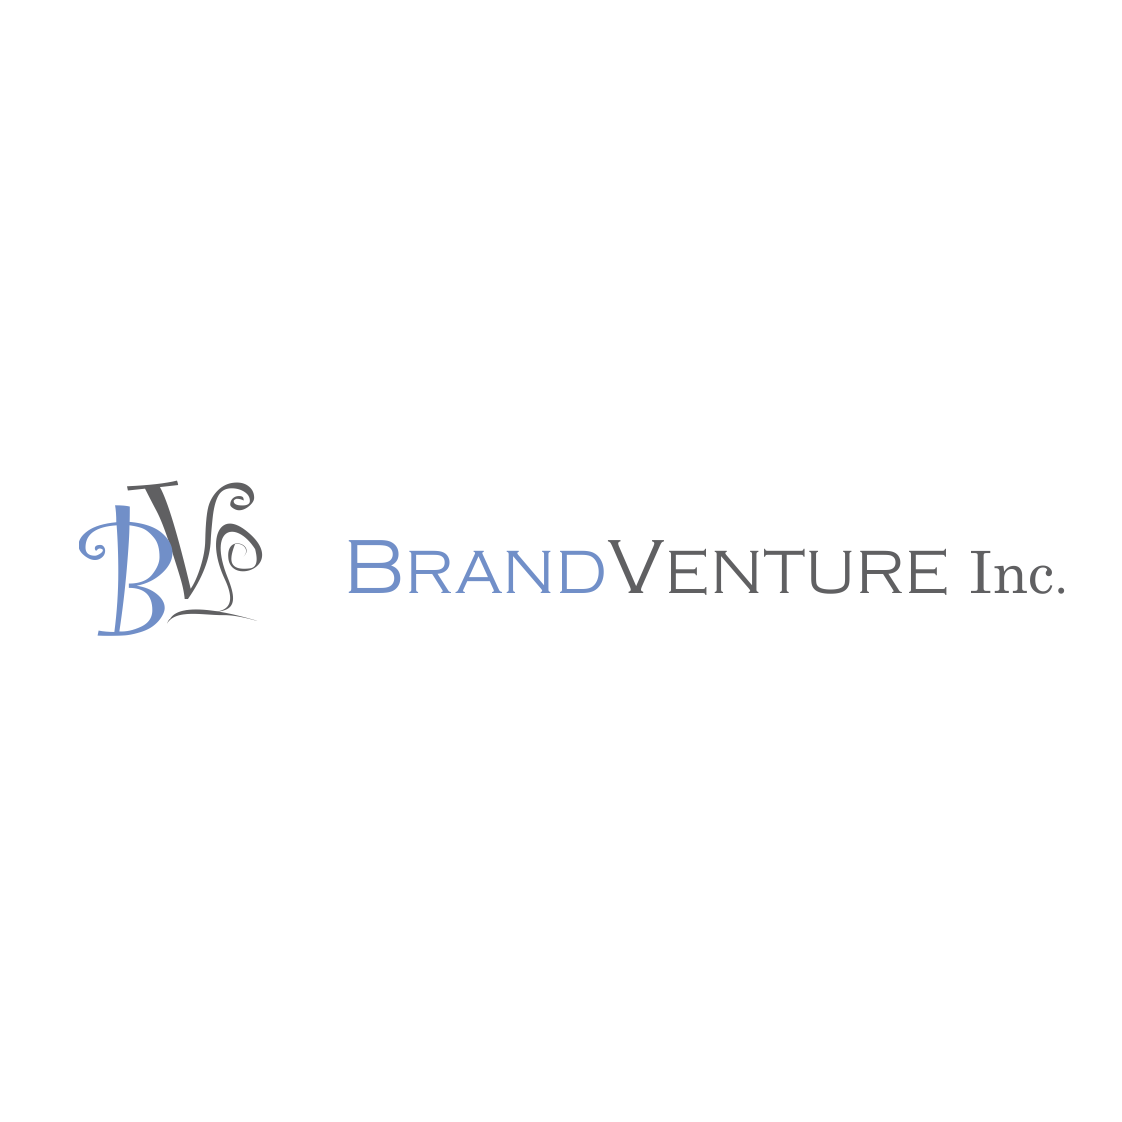 Logo Design by robbiemack - Entry No. 7 in the Logo Design Contest BRANDVENTURE Inc..